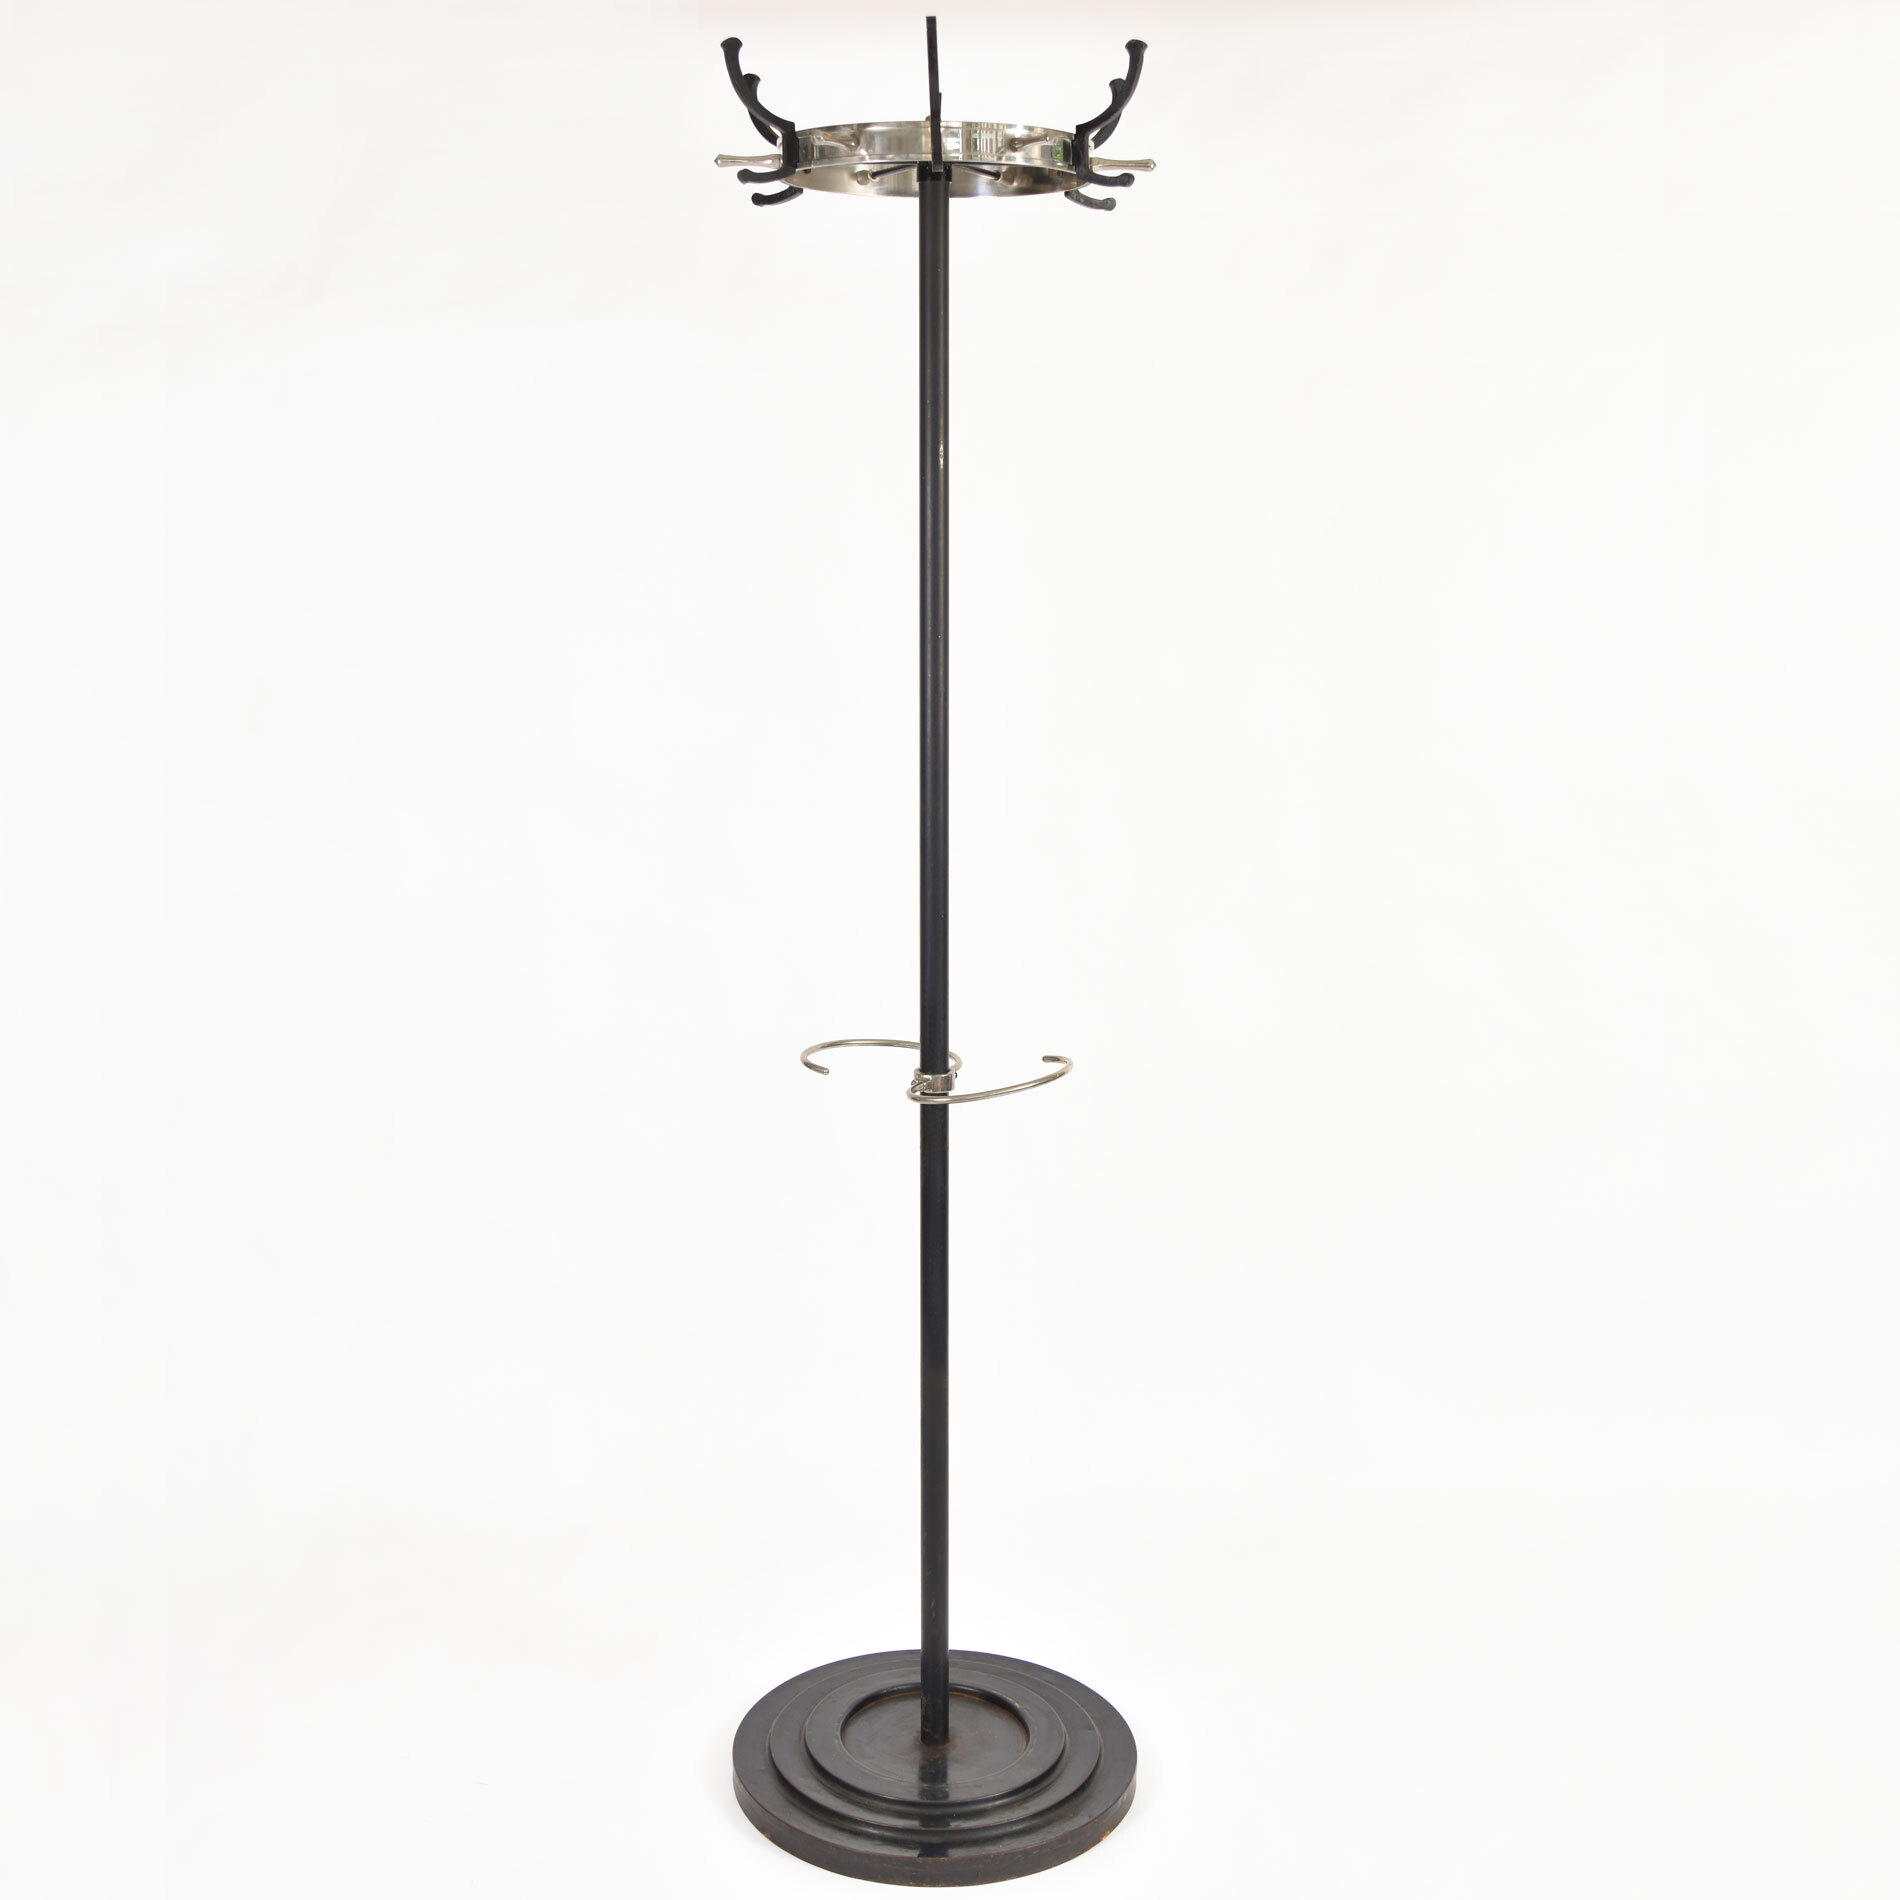 The image for Italian Coat Stand 01